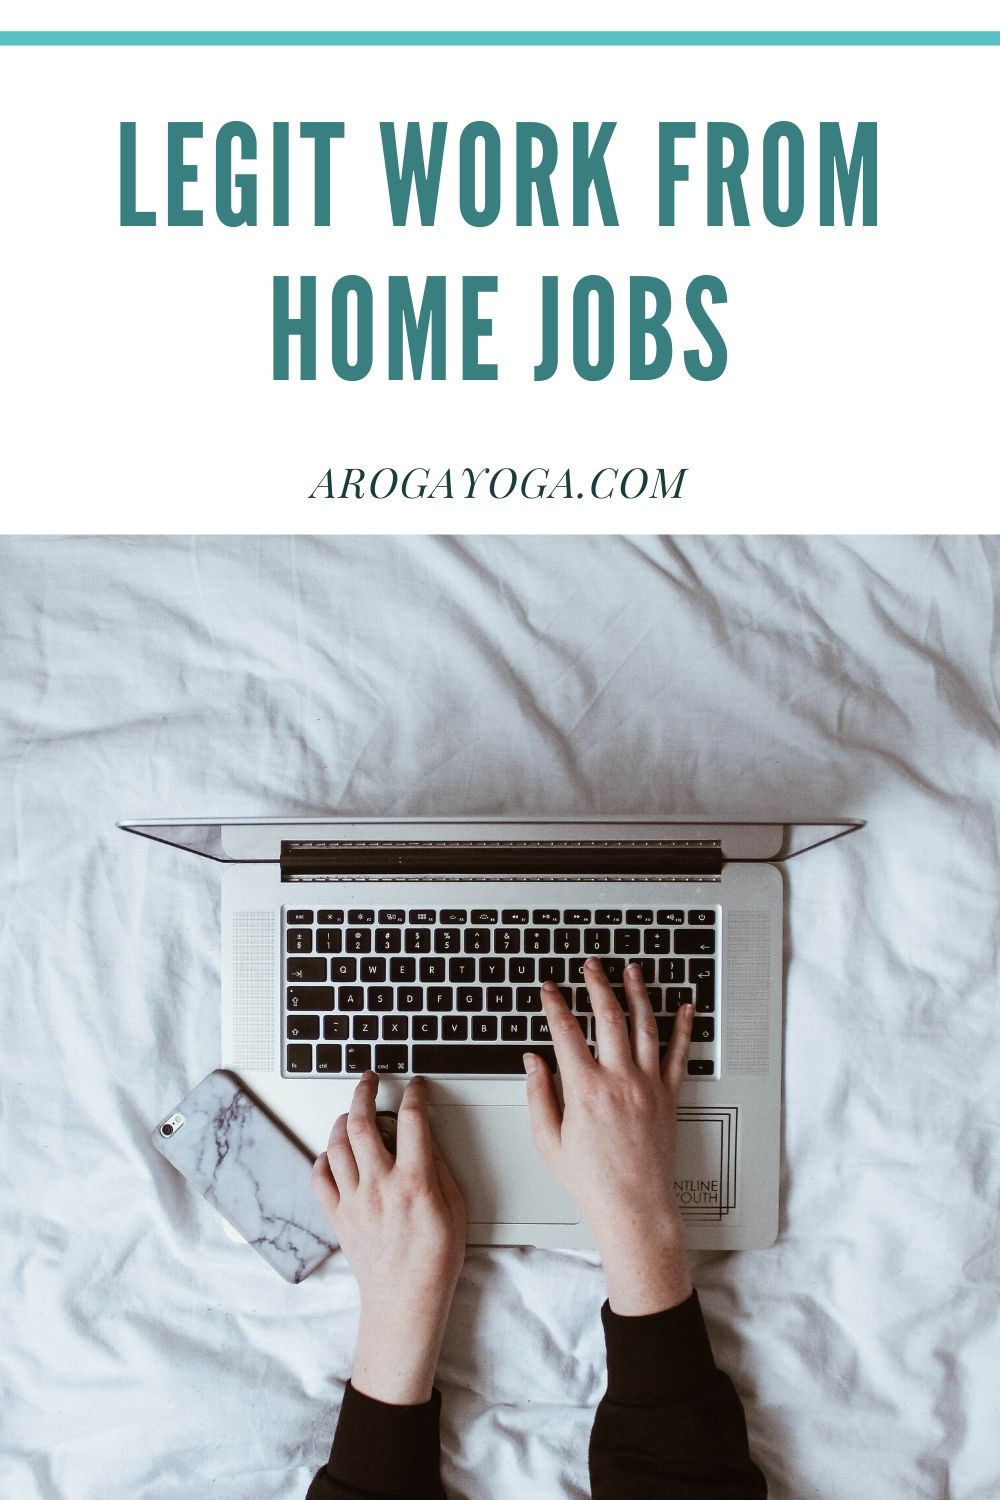 Legit work from home jobs